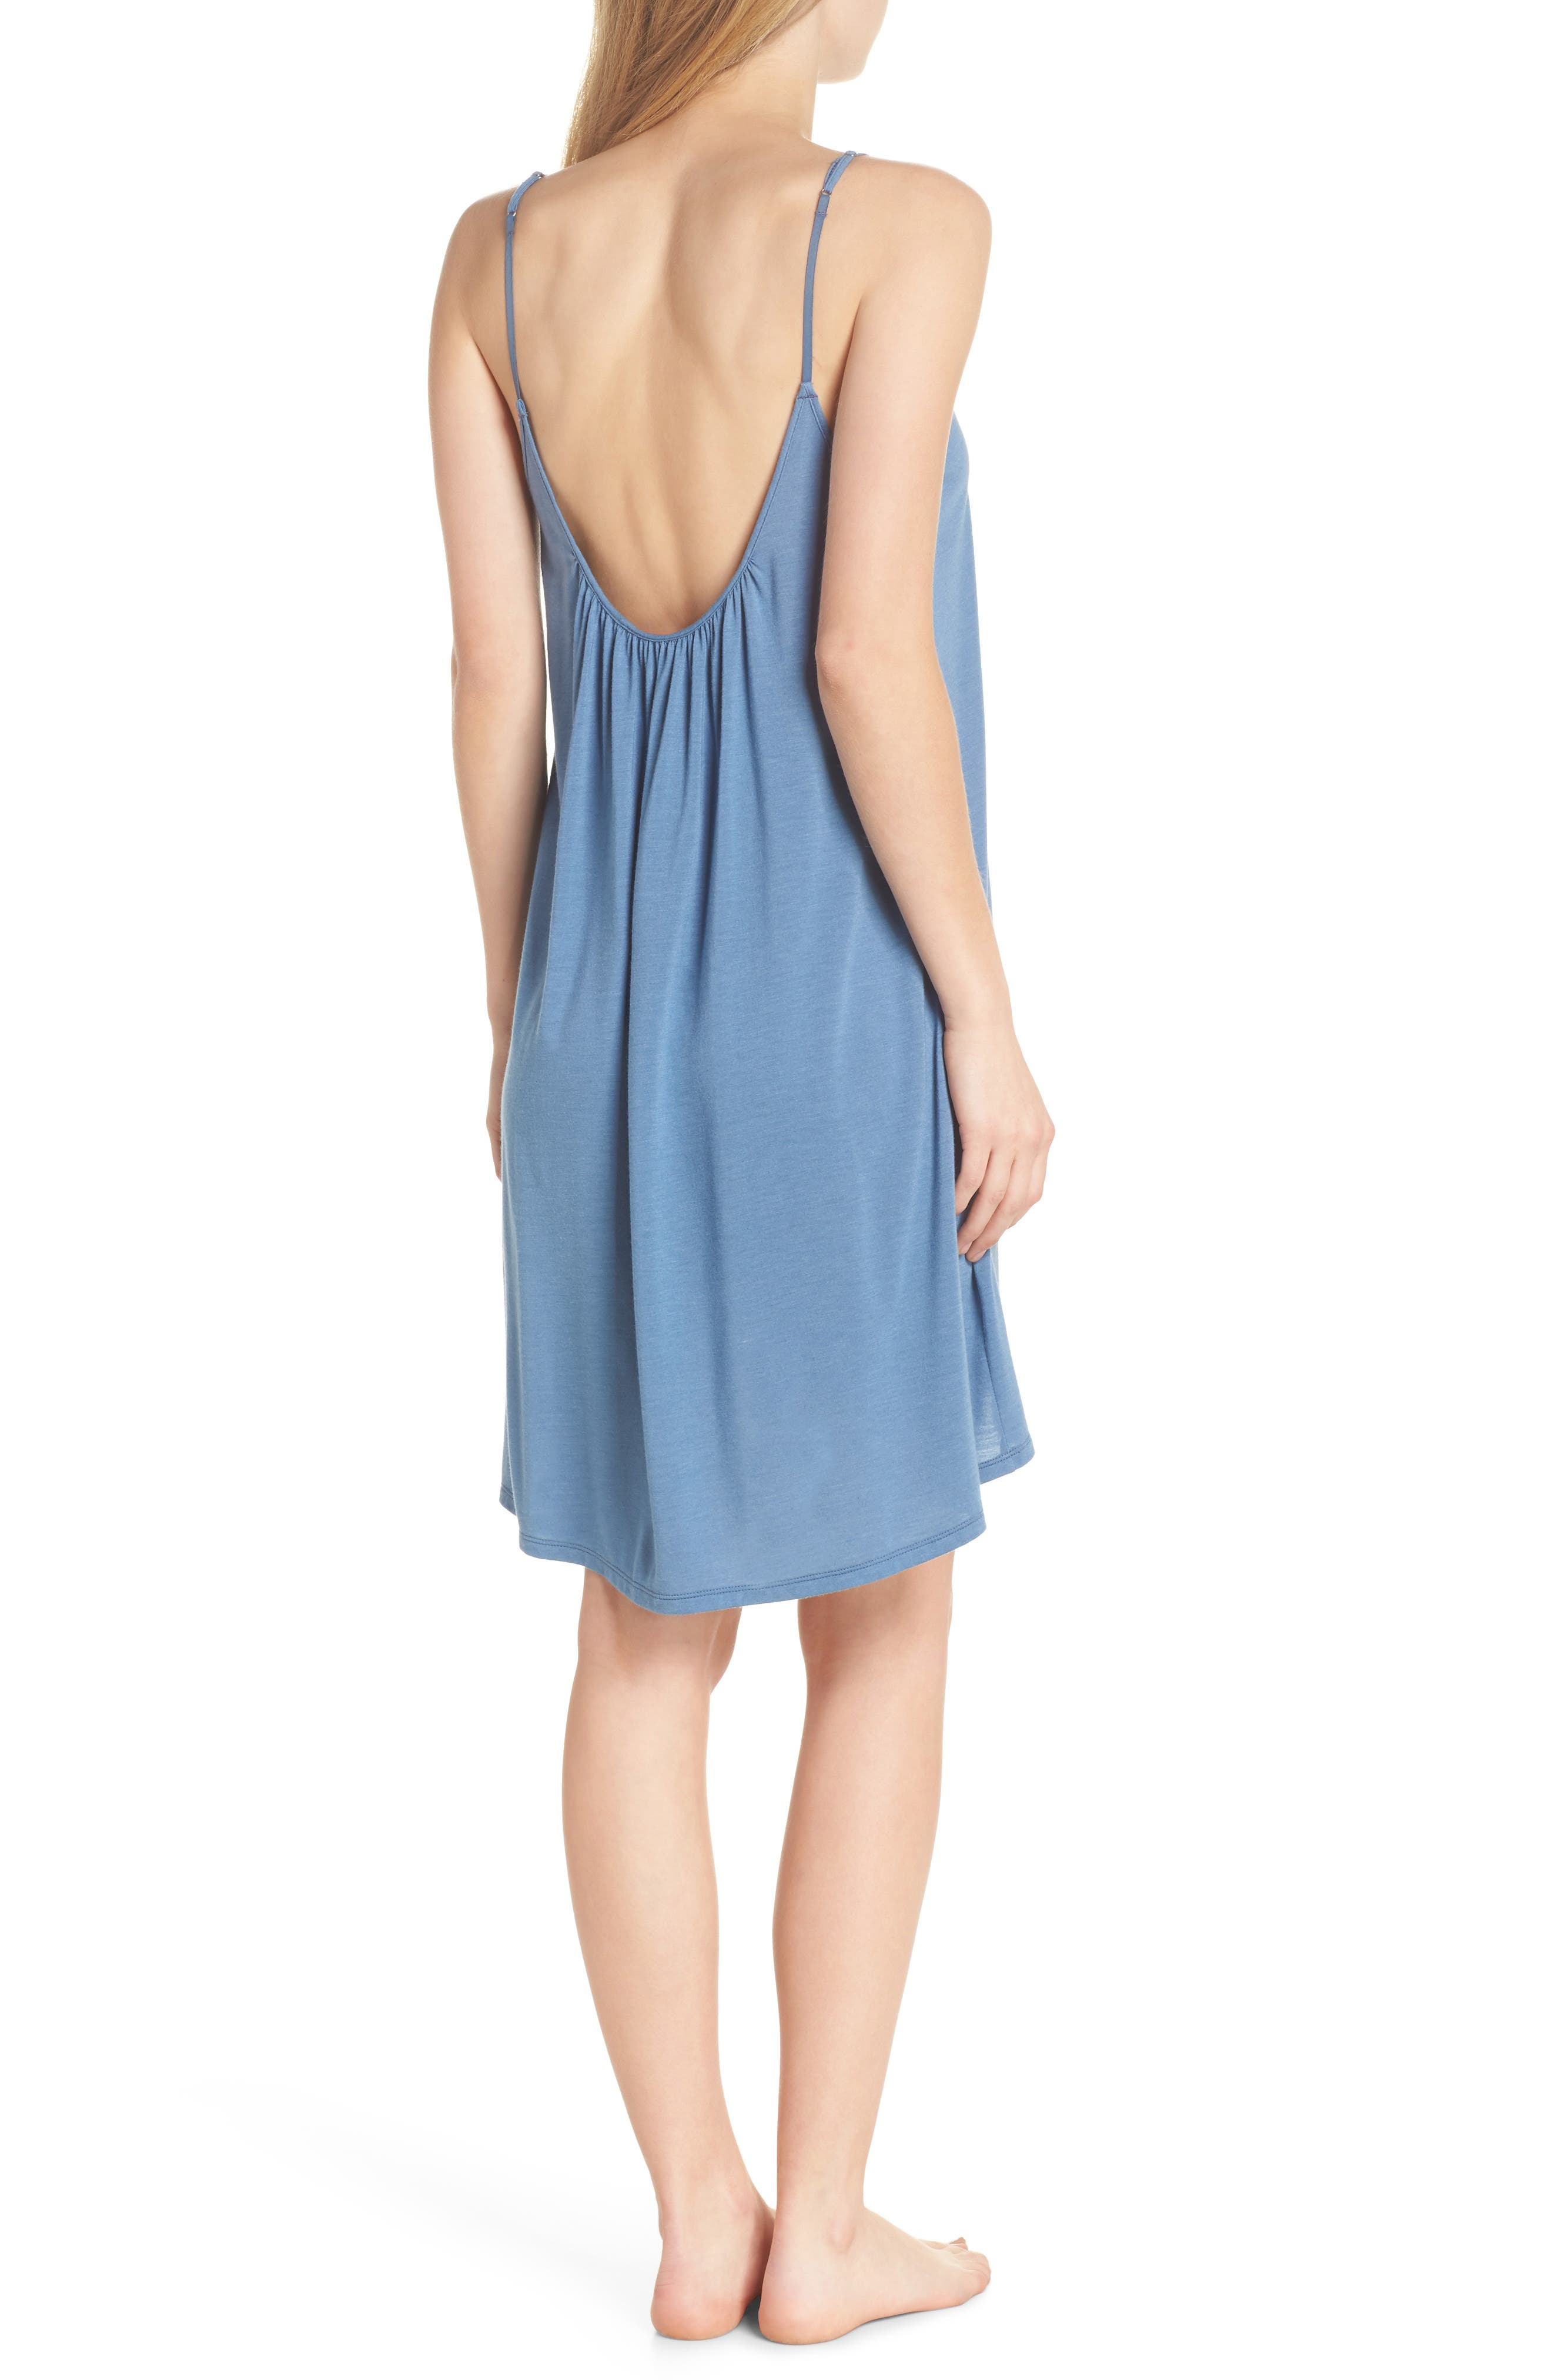 Heather Tees Chemise,                             Alternate thumbnail 2, color,                             Bsq Ht Blue Shadow